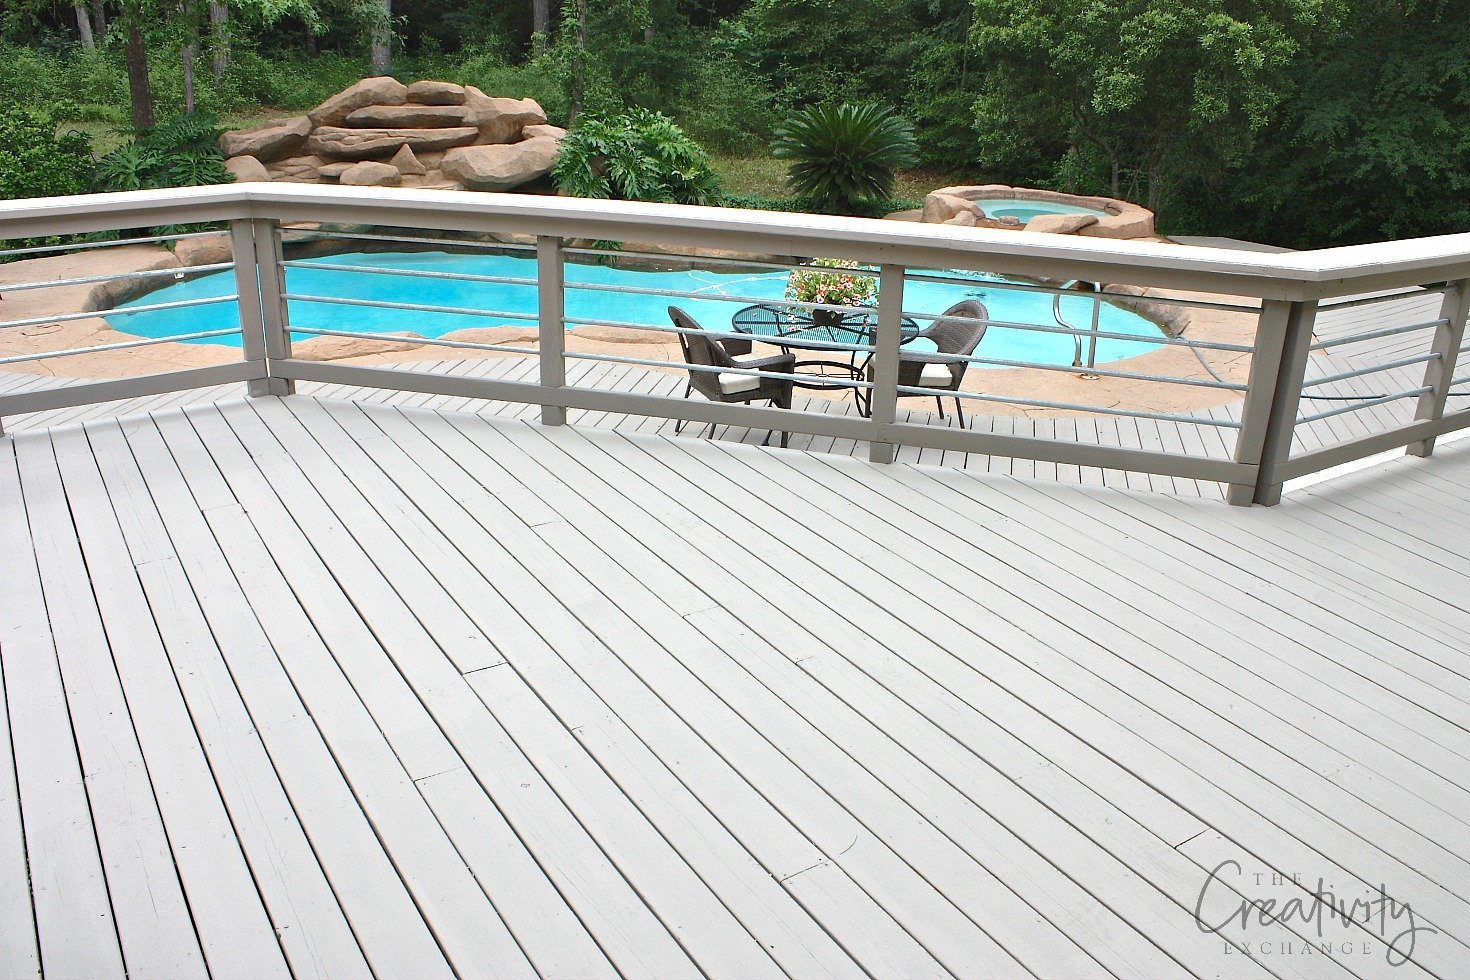 Best paints to use on decks and exterior wood features for External timber decking